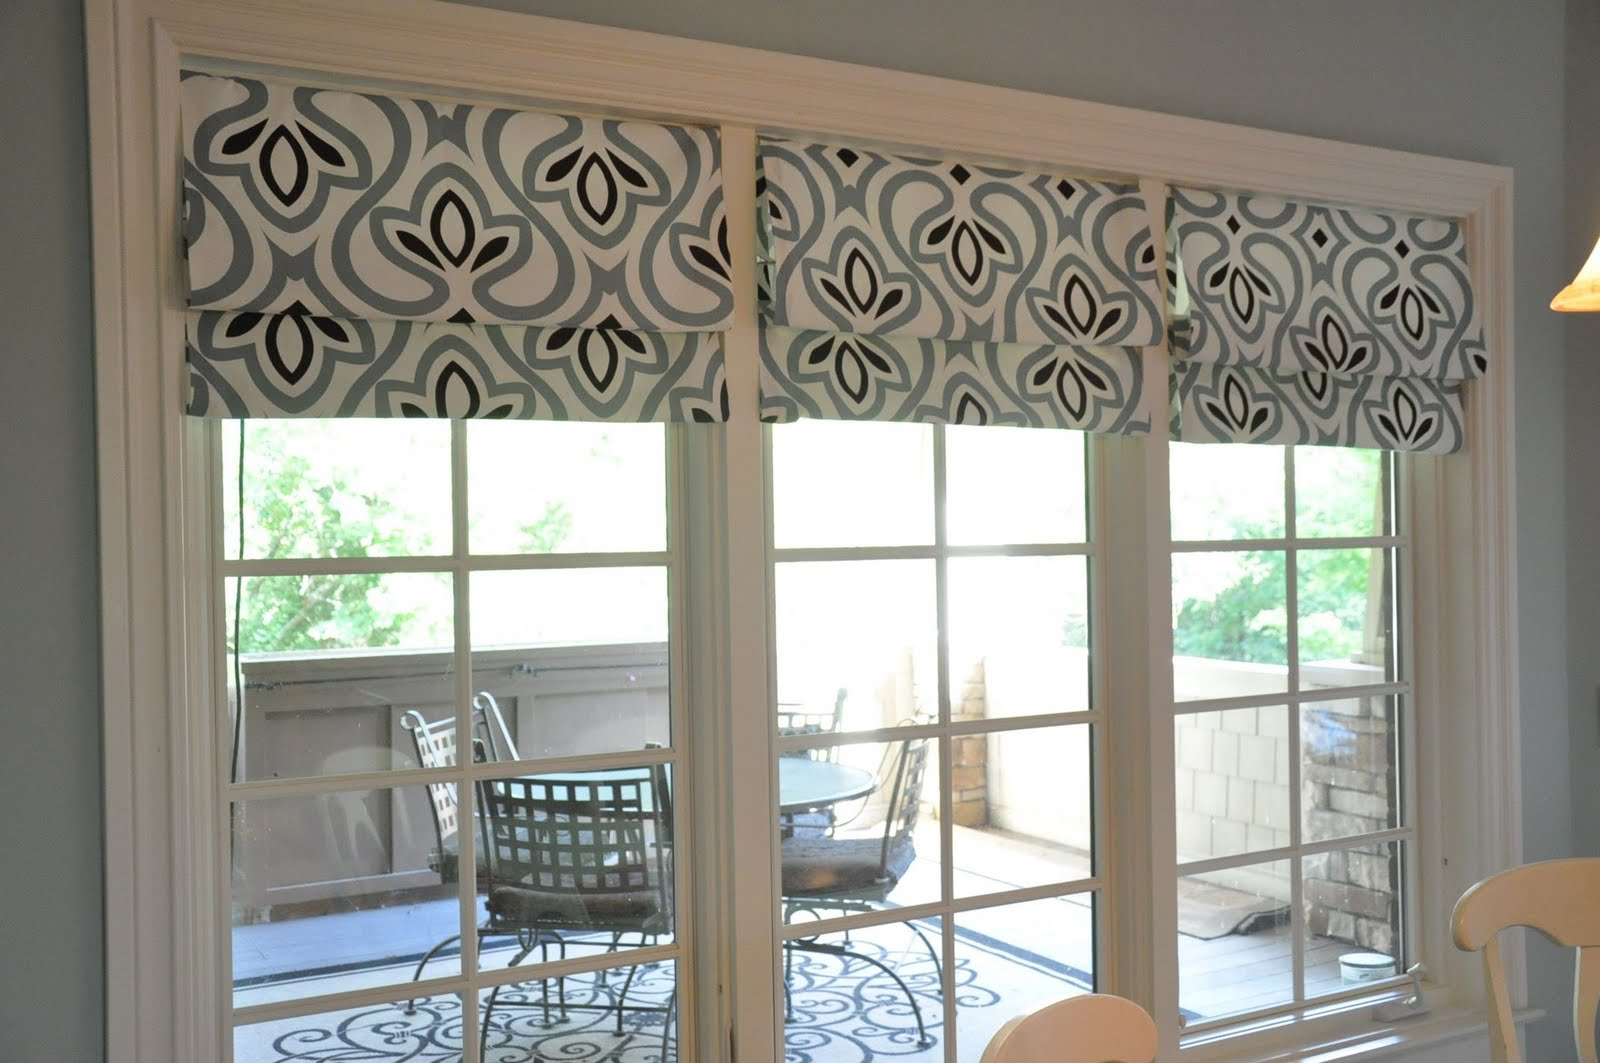 Black pattern on the panoramic window's shades